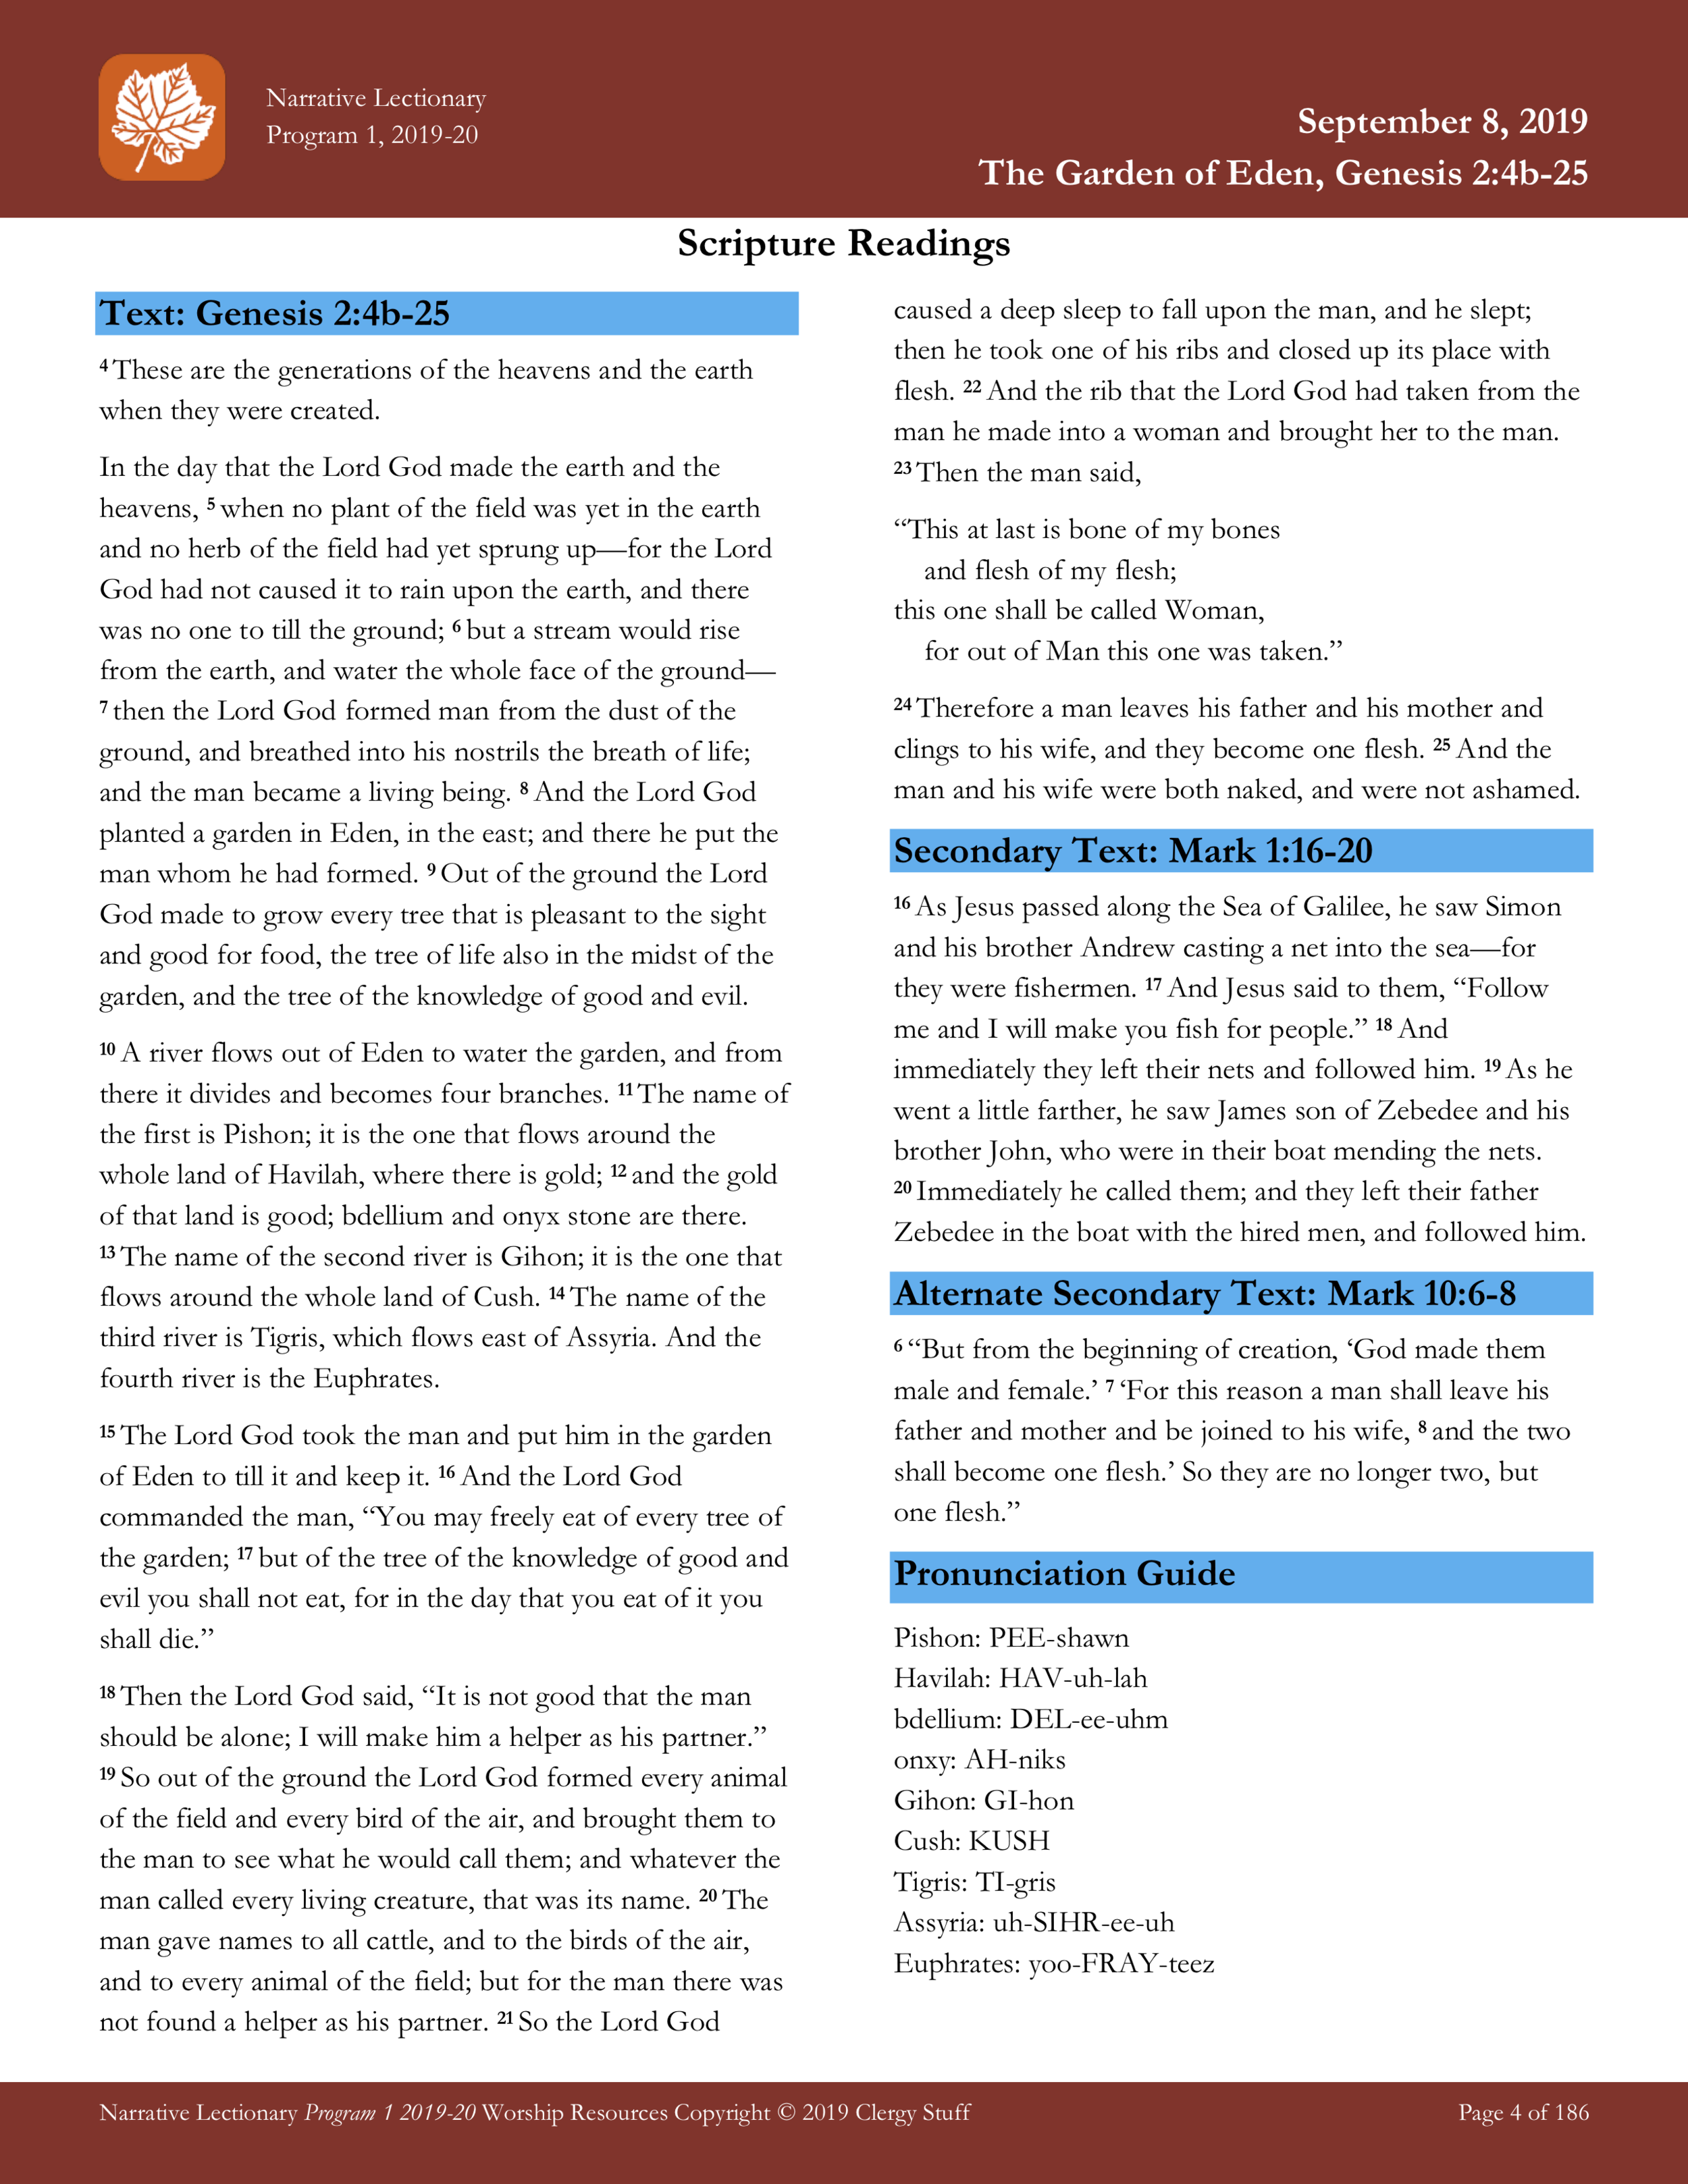 2019-20 program 1 worship resources NL copy (dragged) 3.png